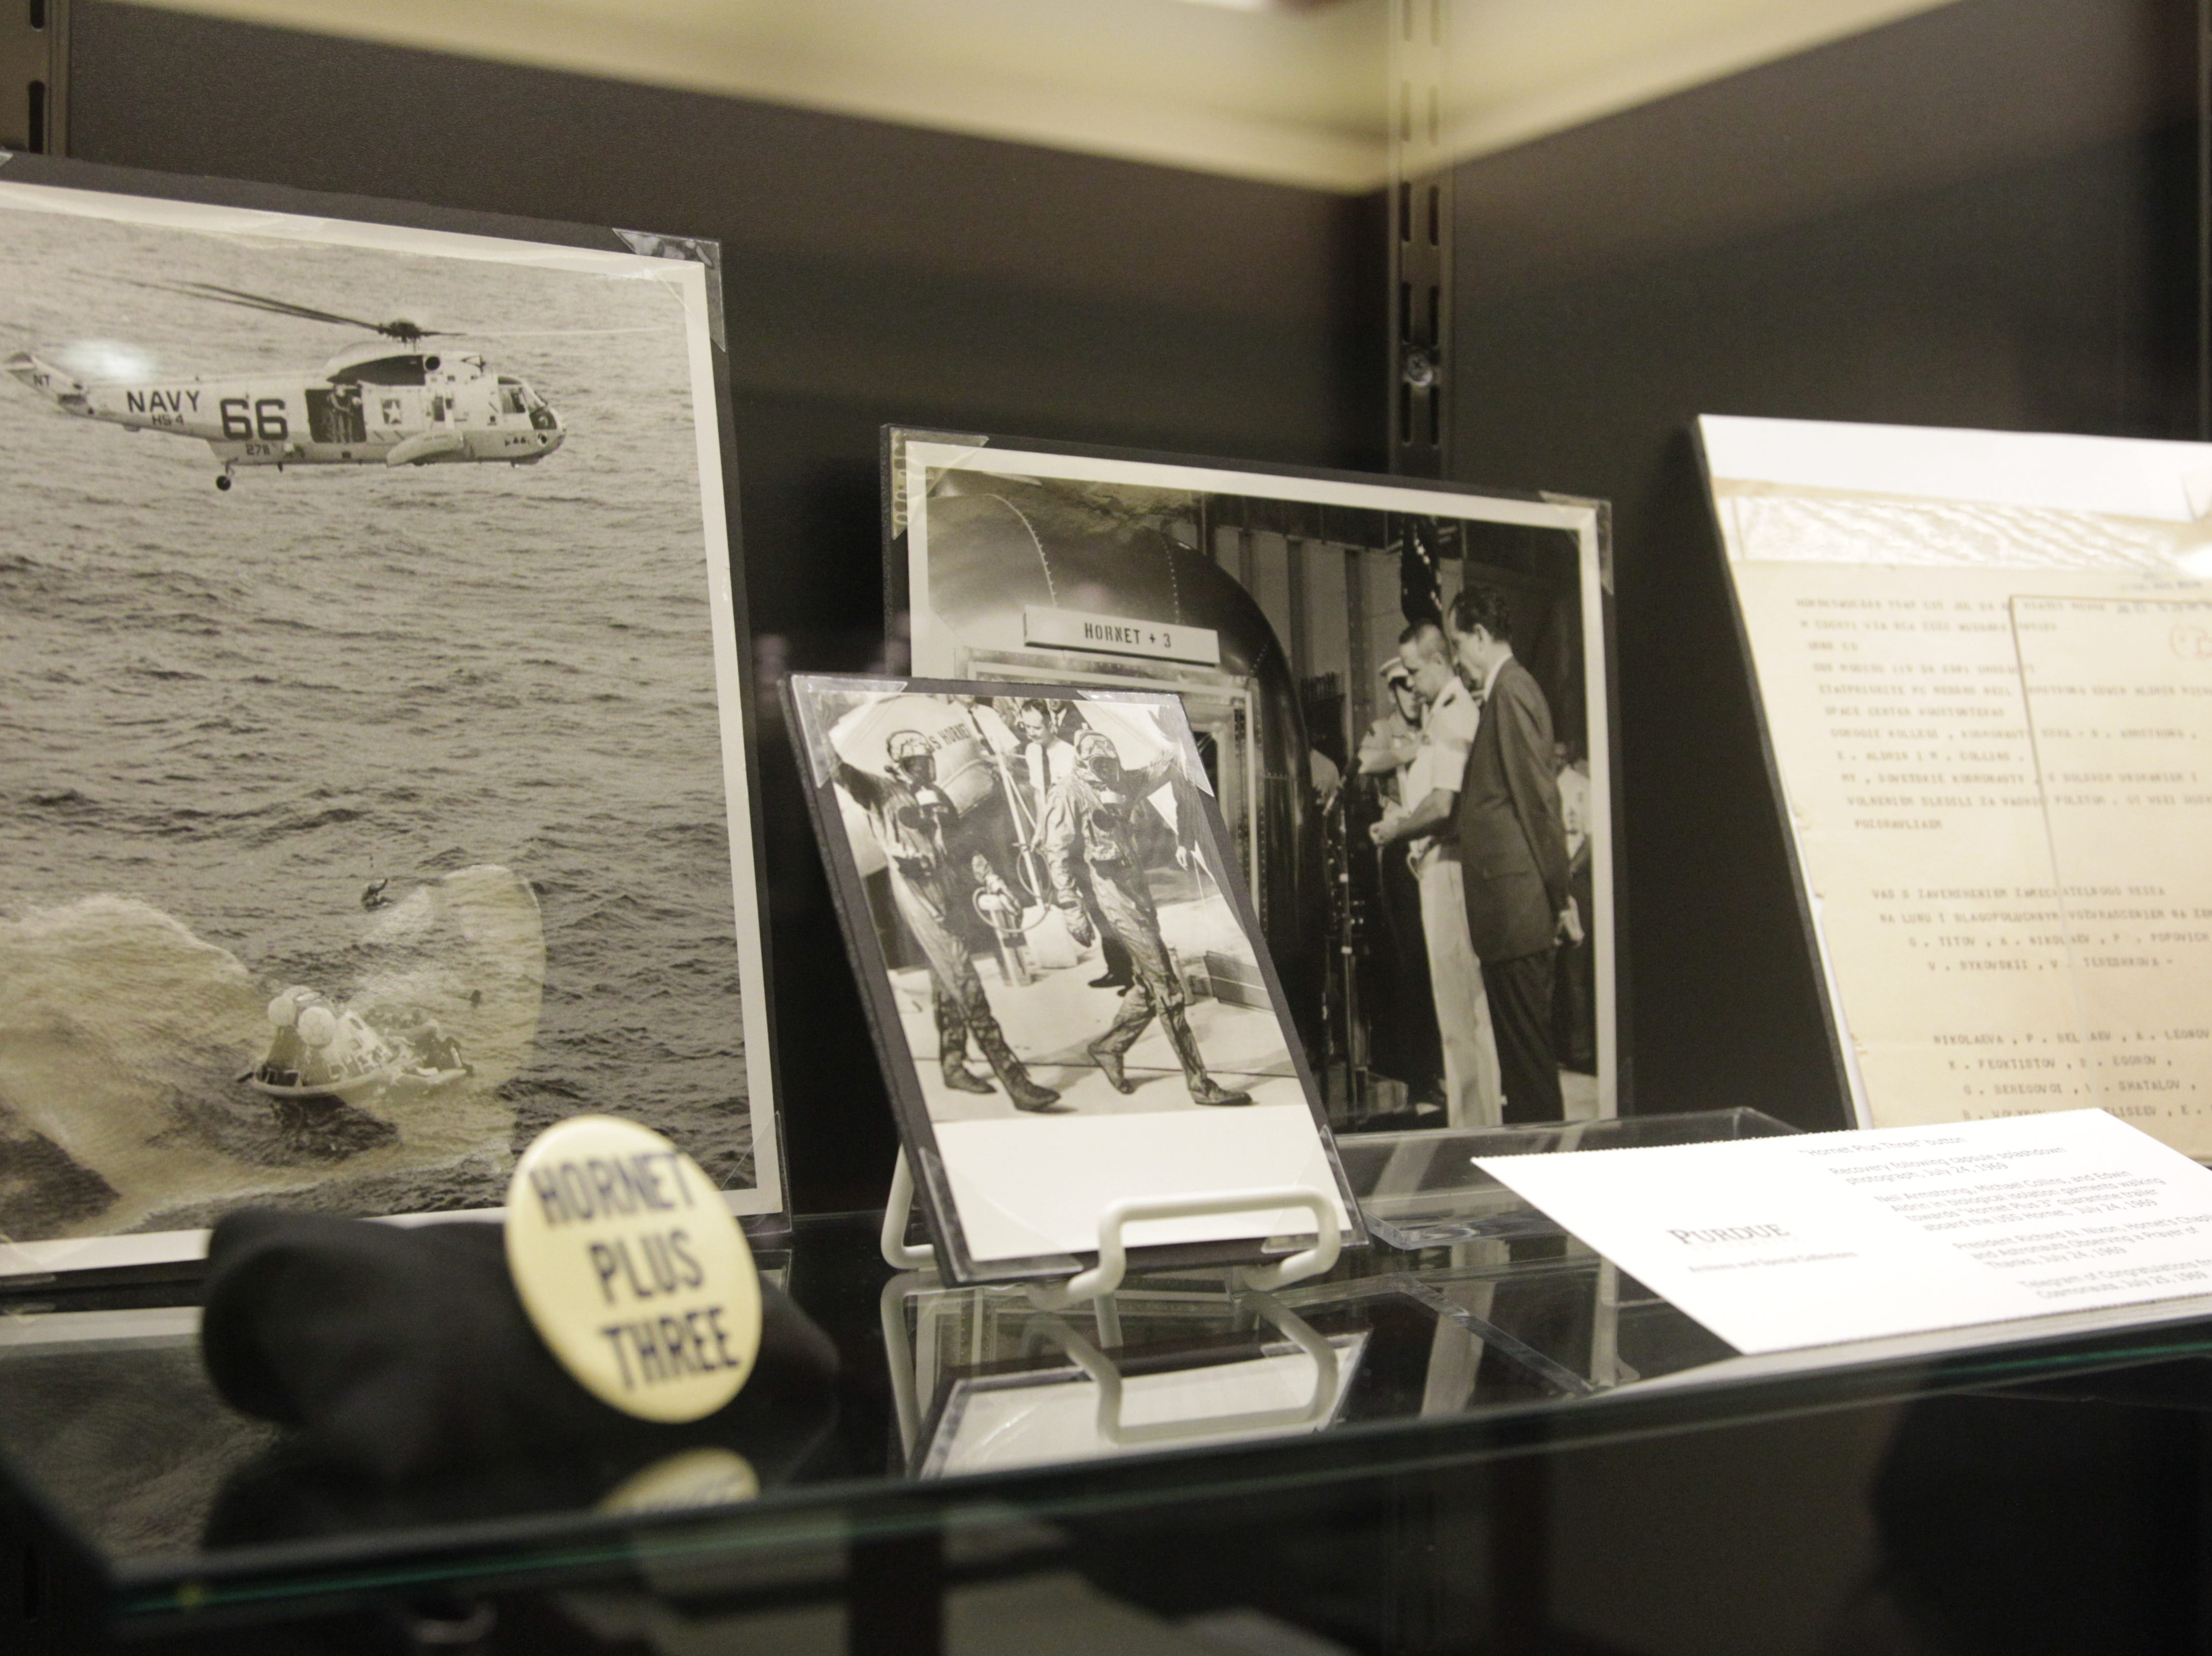 Photos of Neil Armstrong, Buzz Aldrin and Mike Collins in quarantine after Apollo 11 are on display.